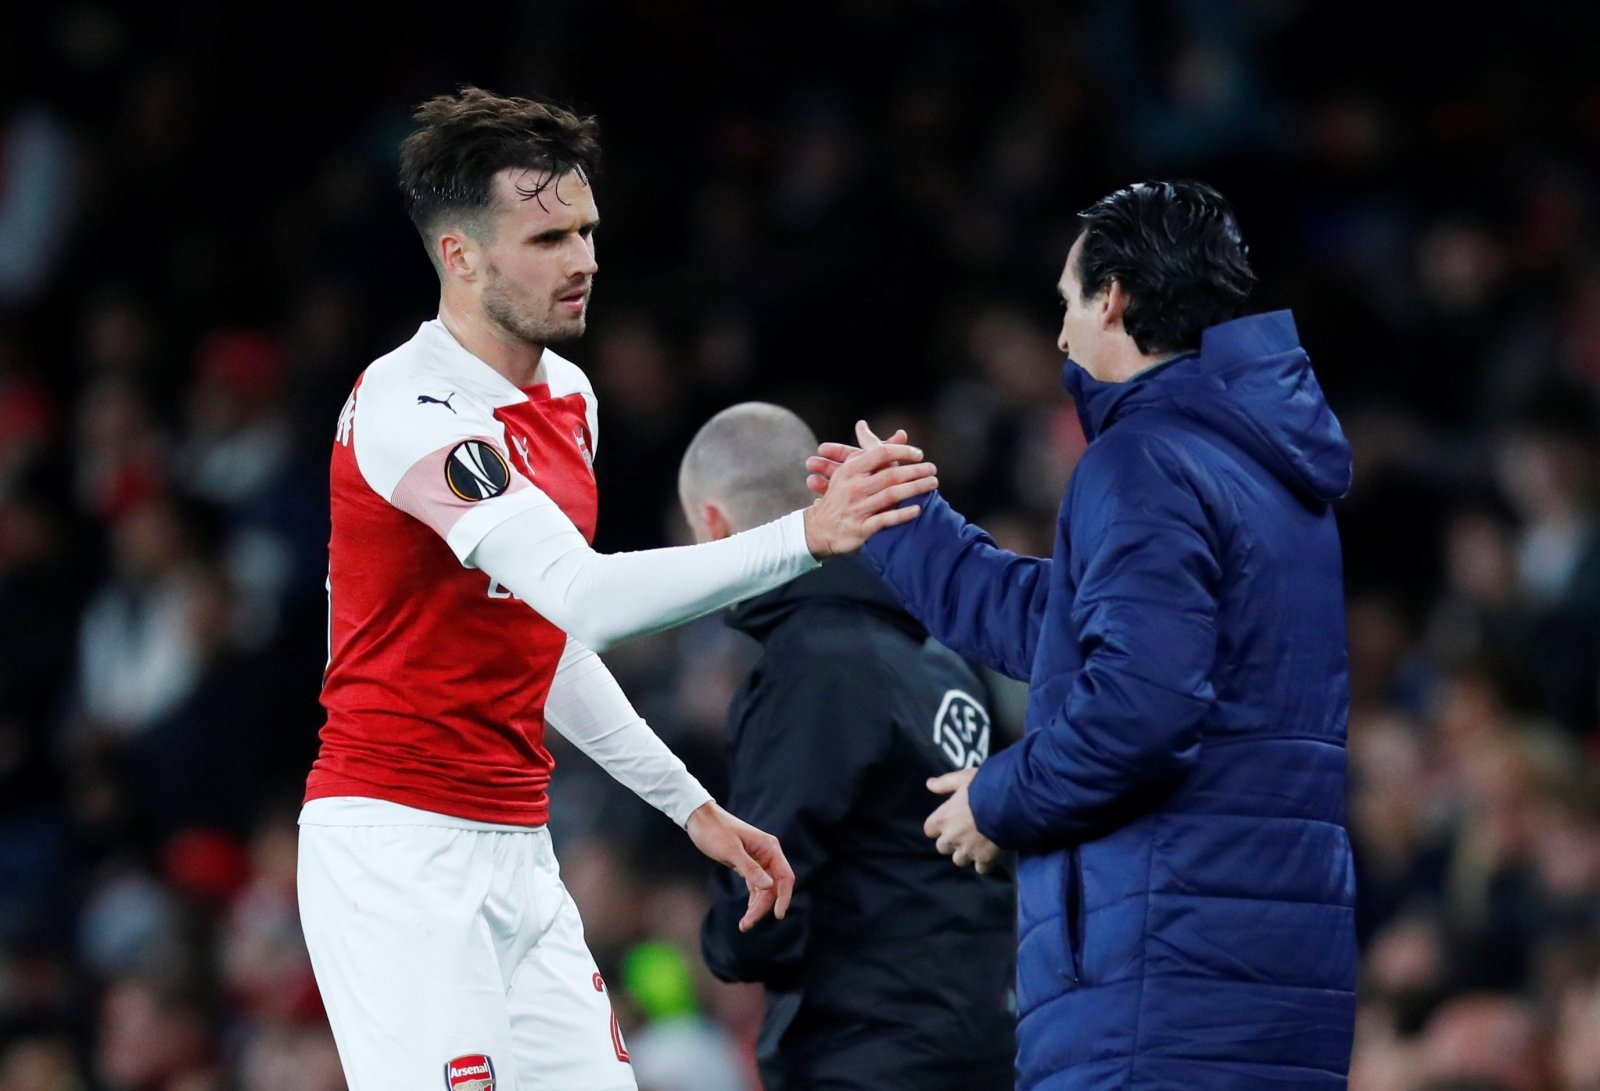 Arsenal: Supporters rejoice as Carl Jenkinson edges closer to exit